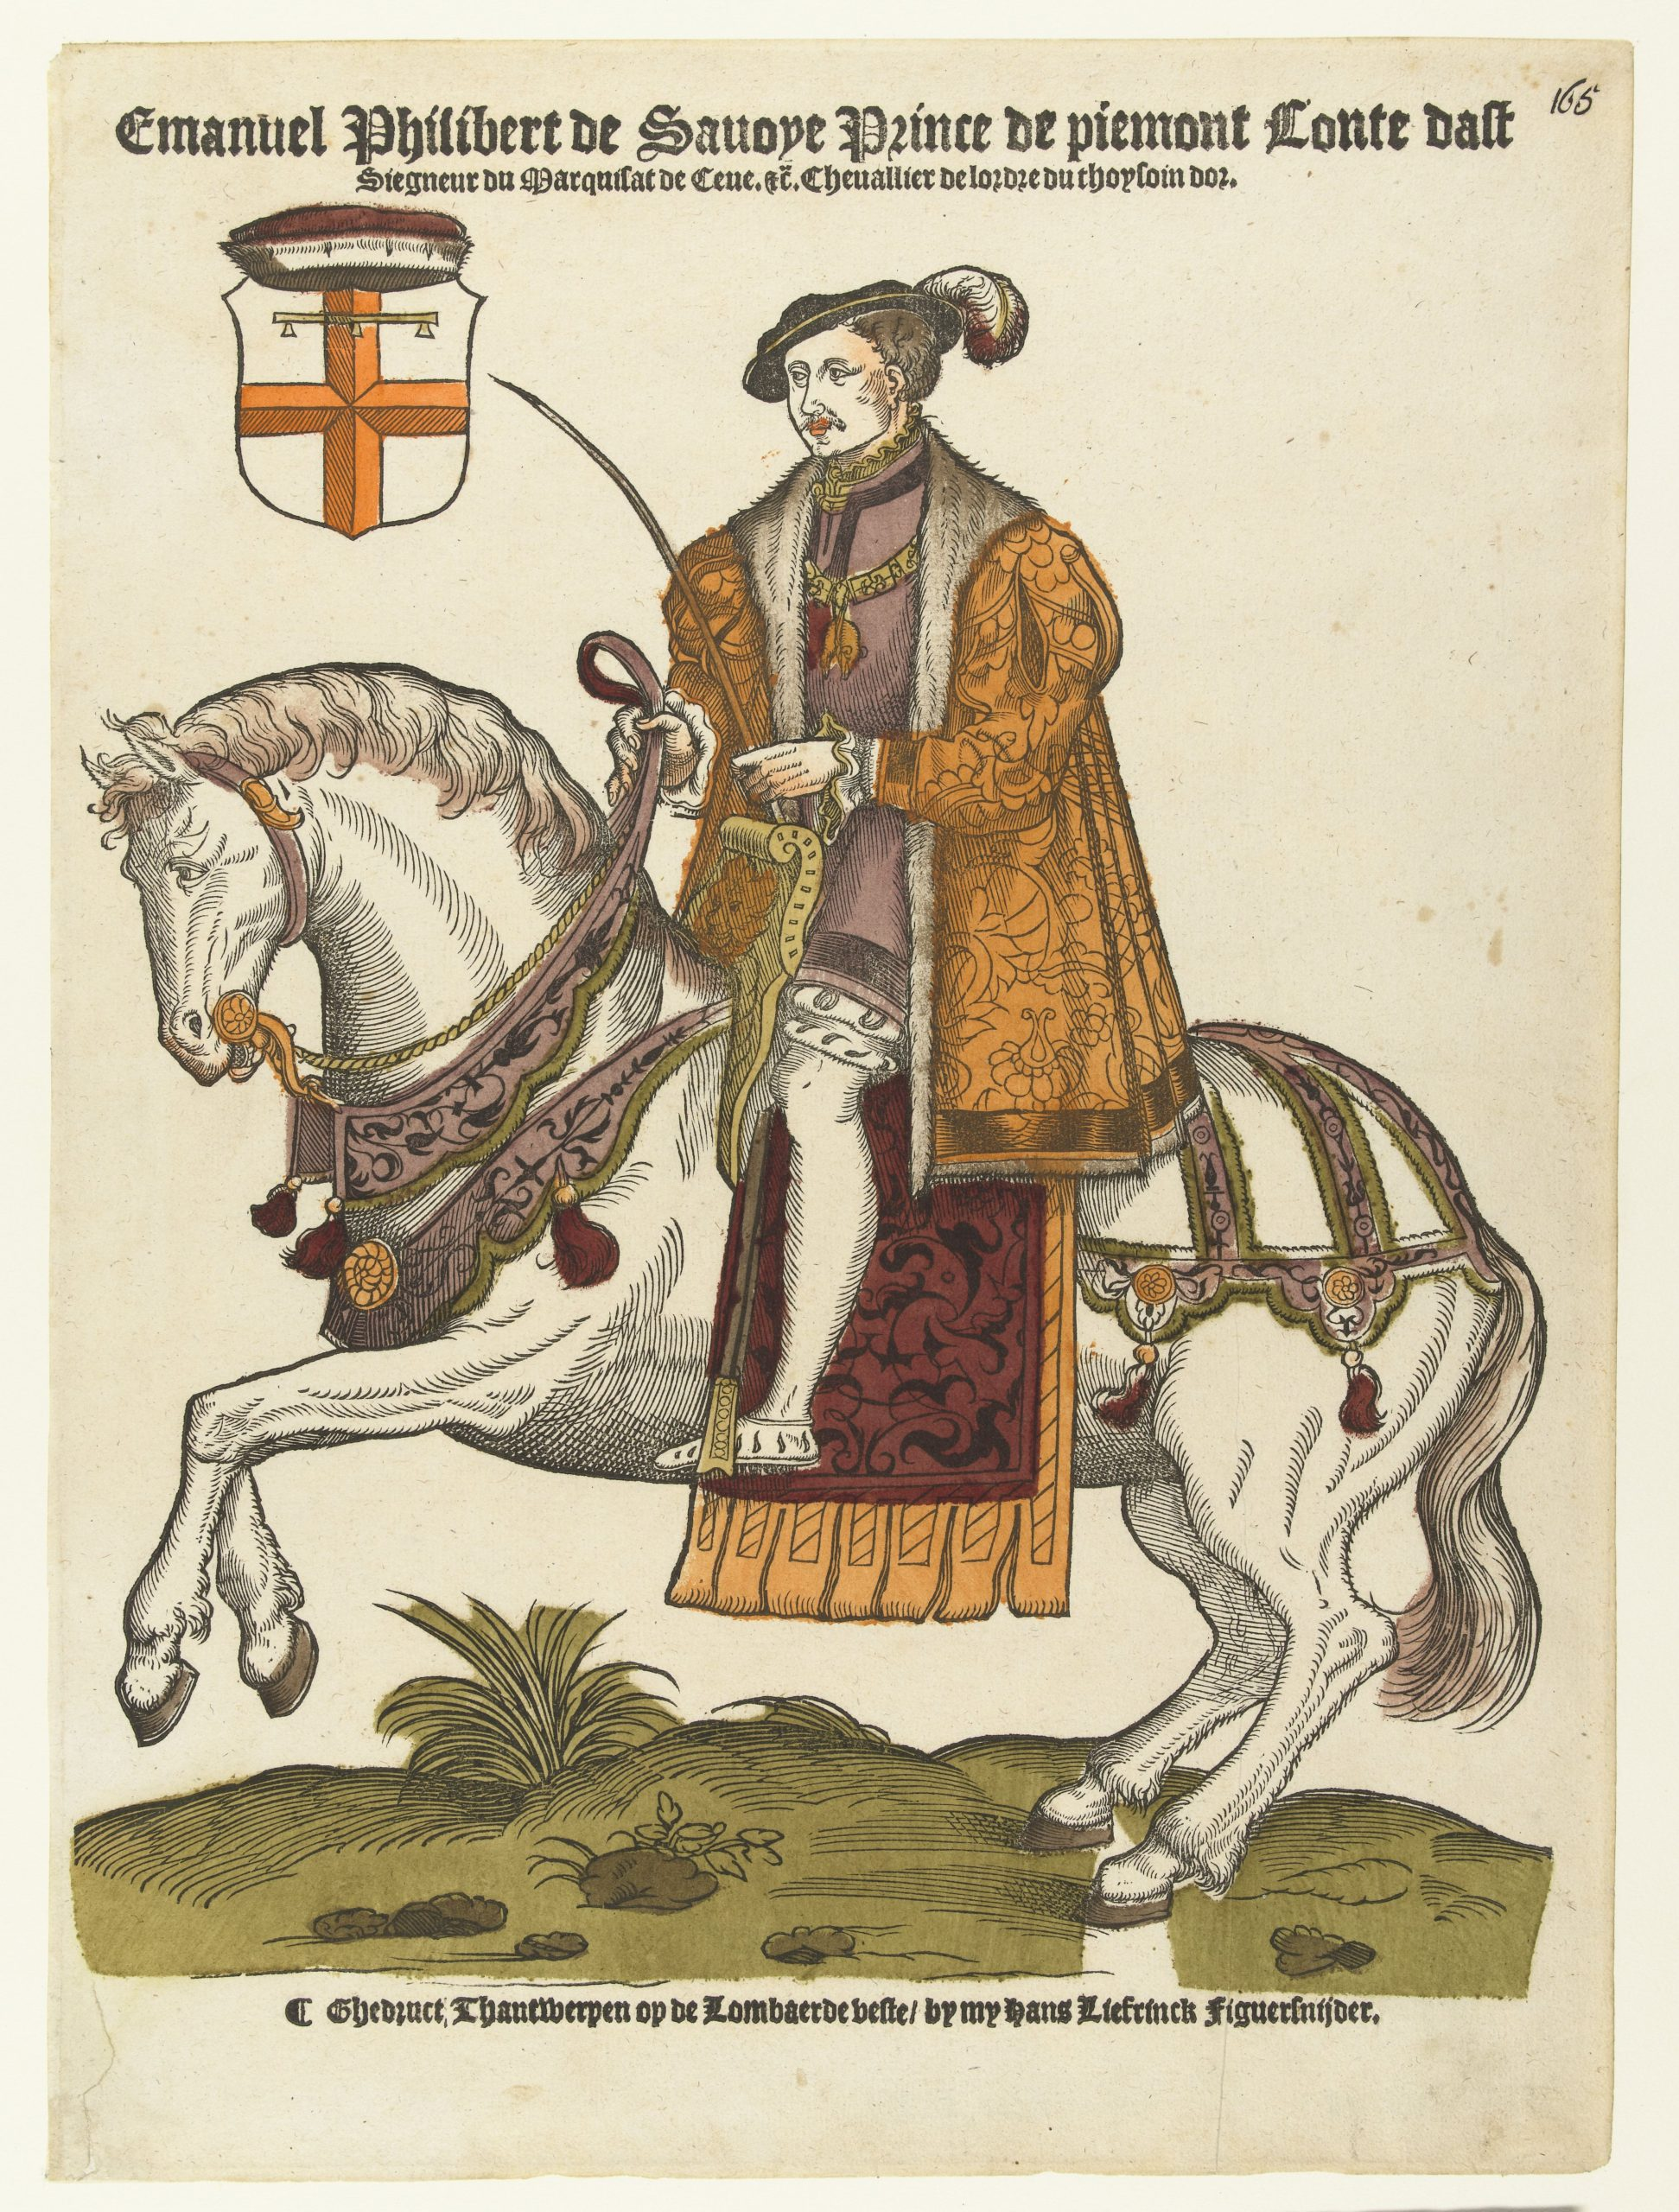 Emmanuel Philibert, duke of Savoy, on Horseback, 1546-50, Cornelis Anthonisz (manner of) and Hans Liefrinck (I), Antwerp, Netherlands